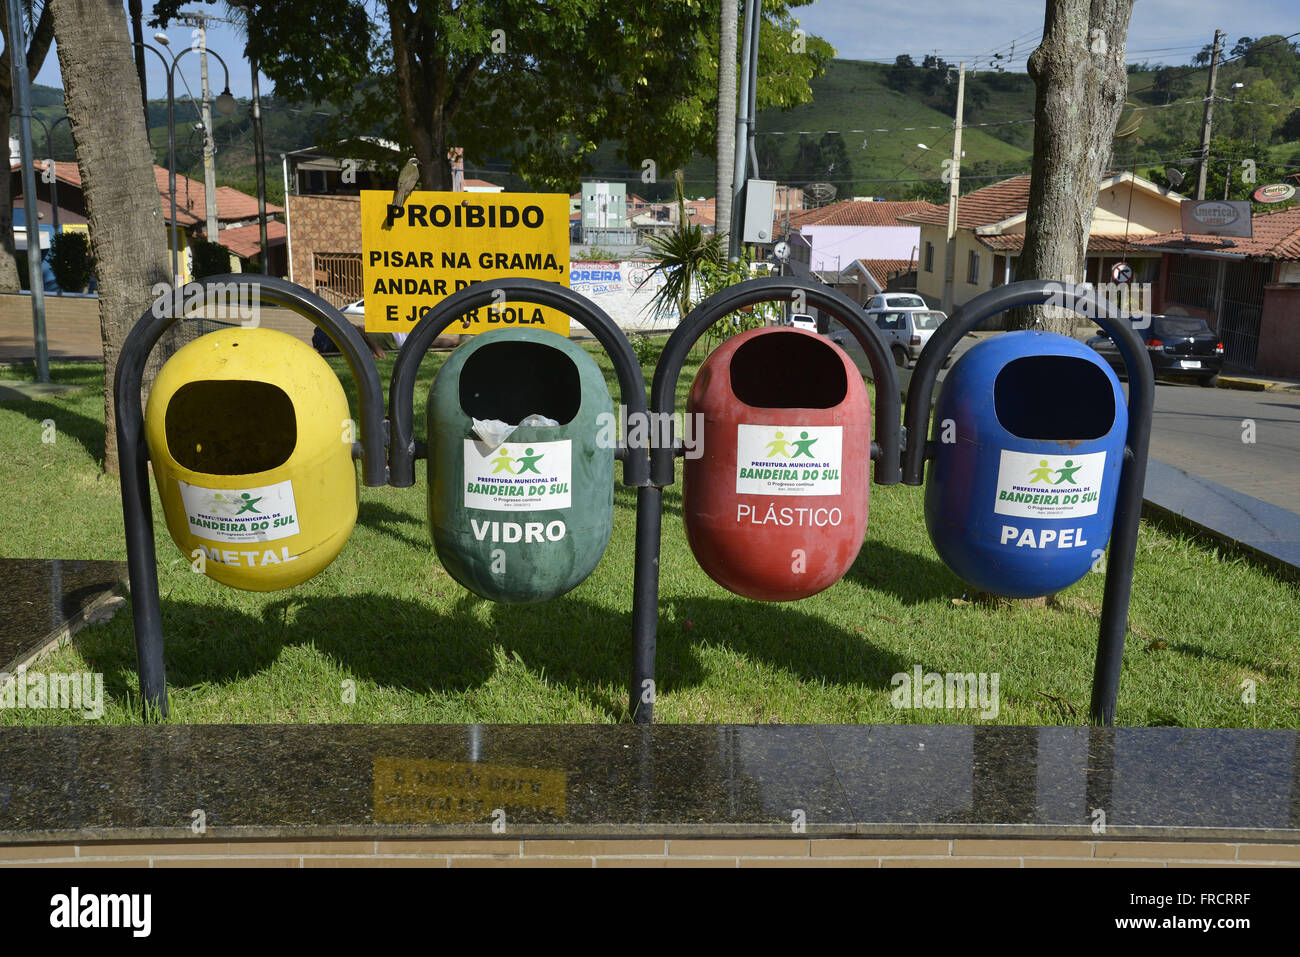 Trash cans for garbage separation discarded in the city center - Stock Image